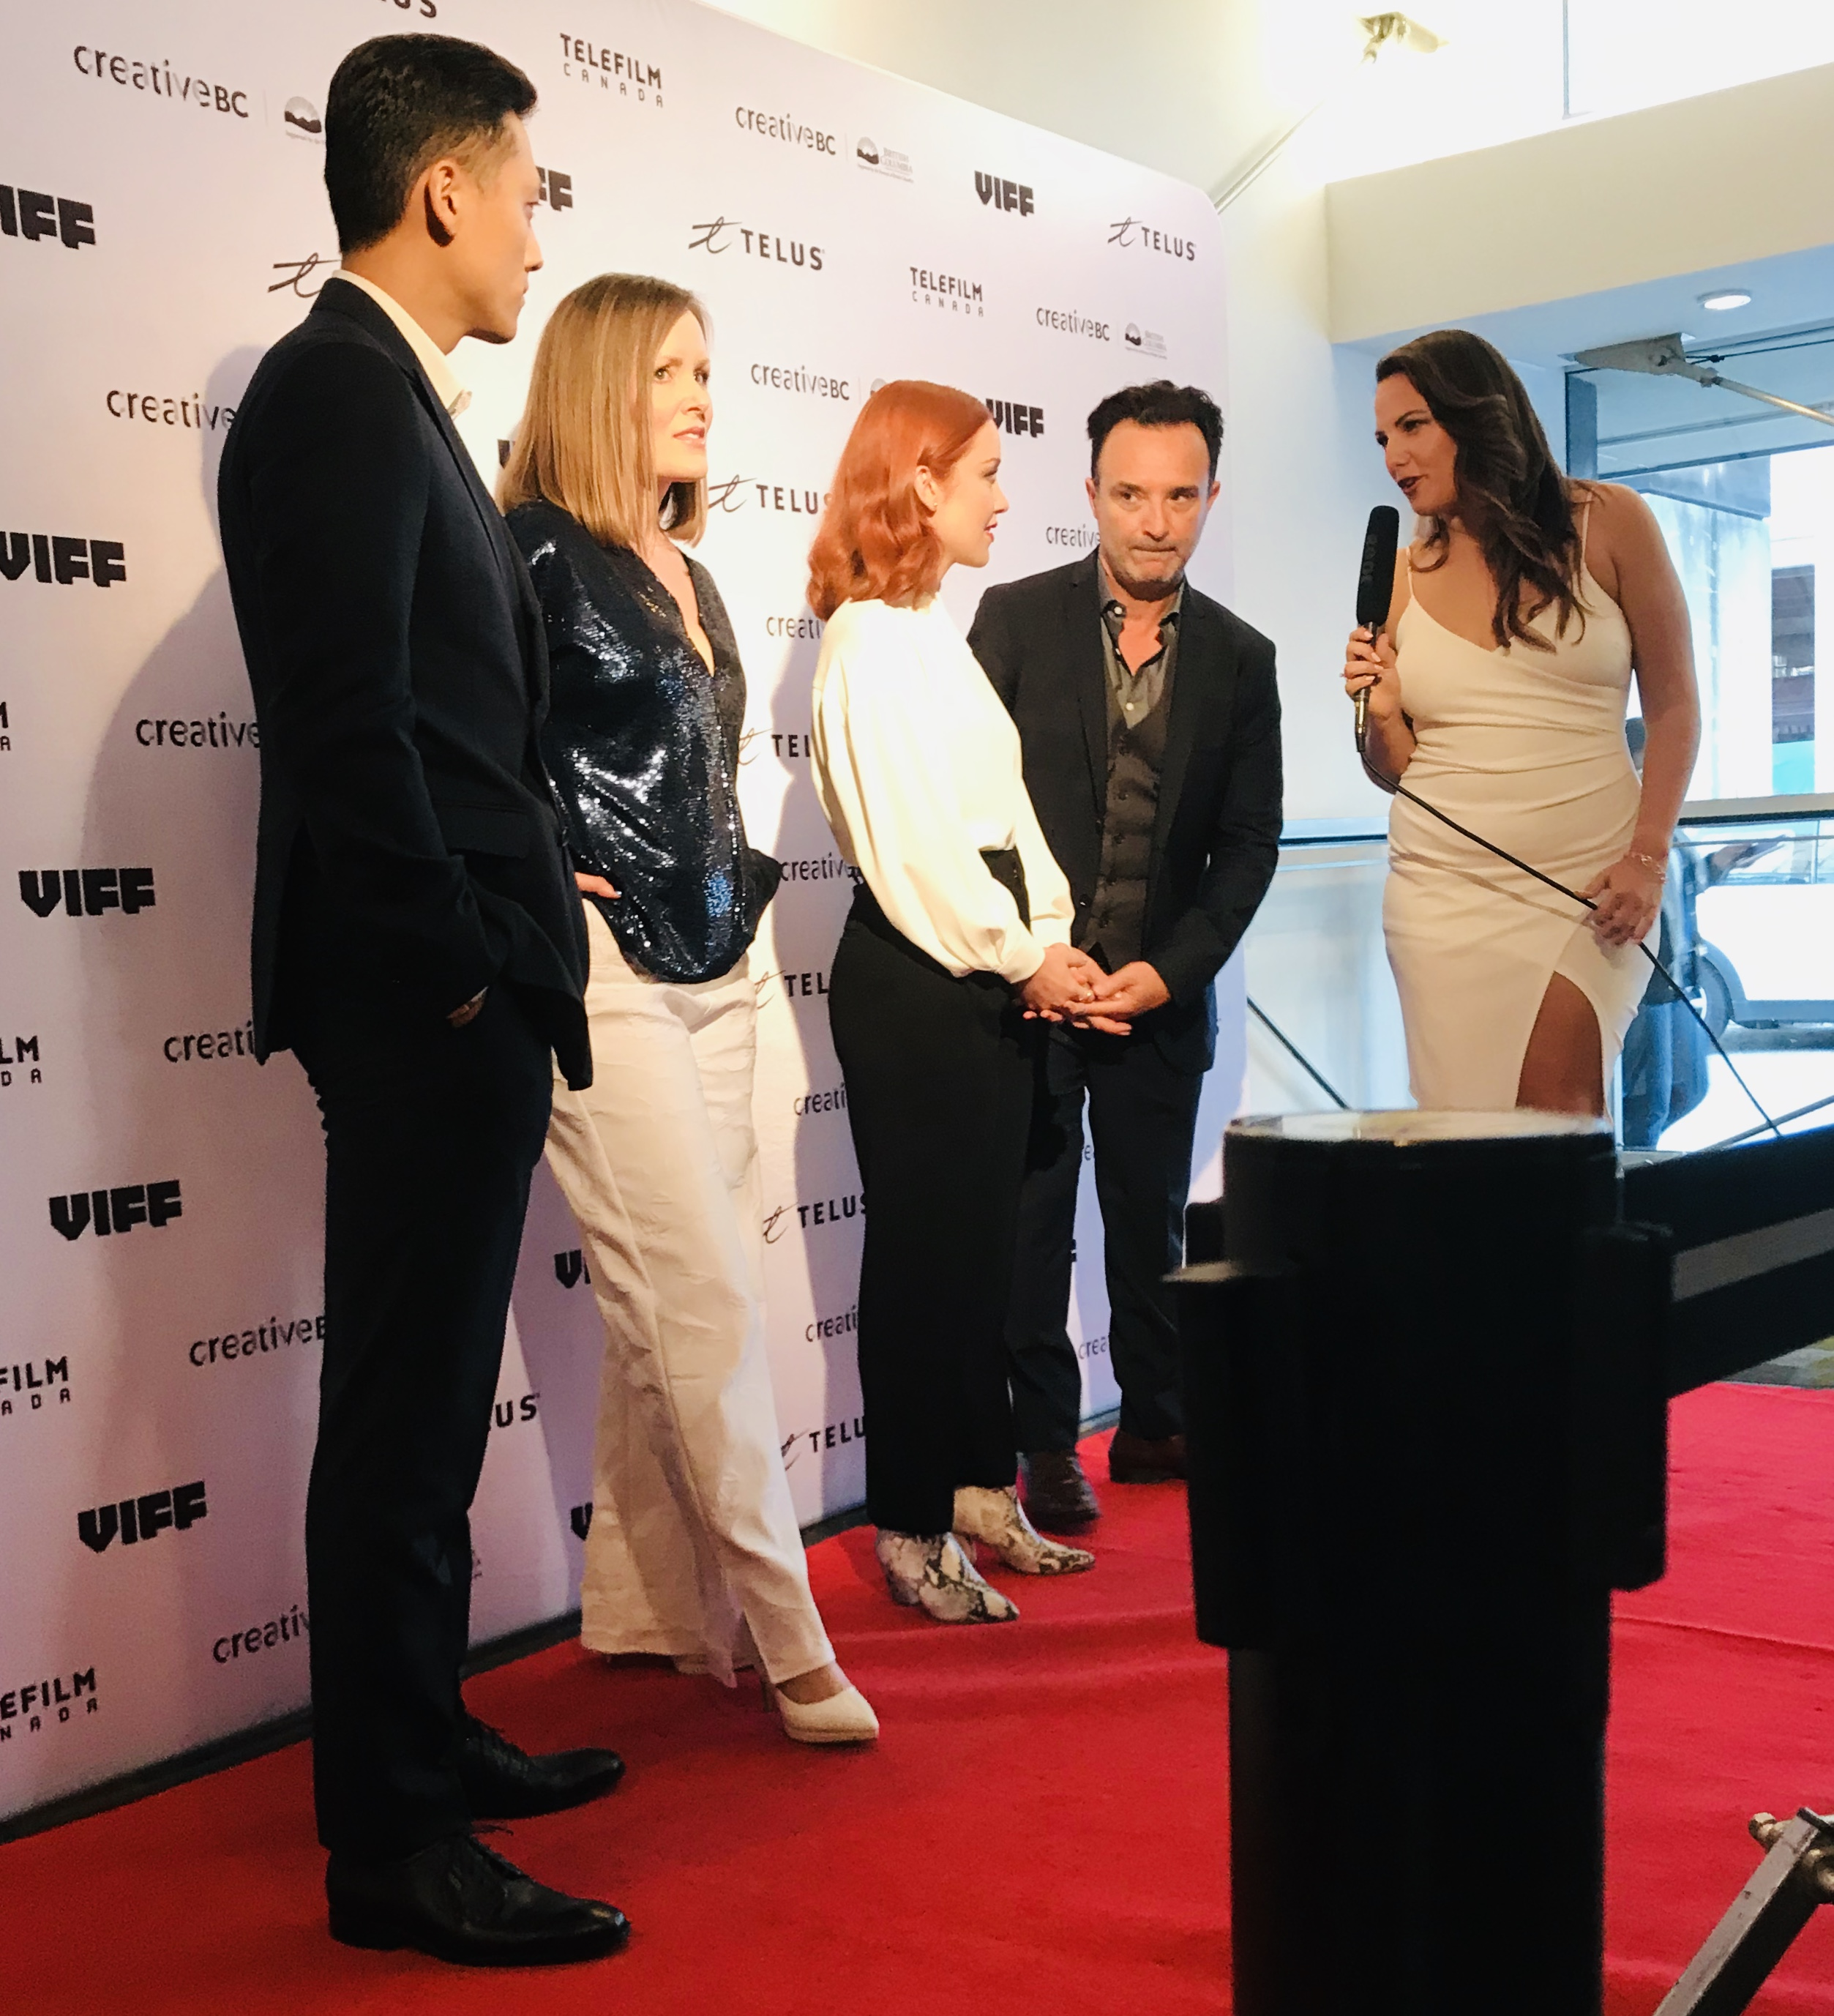 VIFF's Red Carpet Attracts the Best